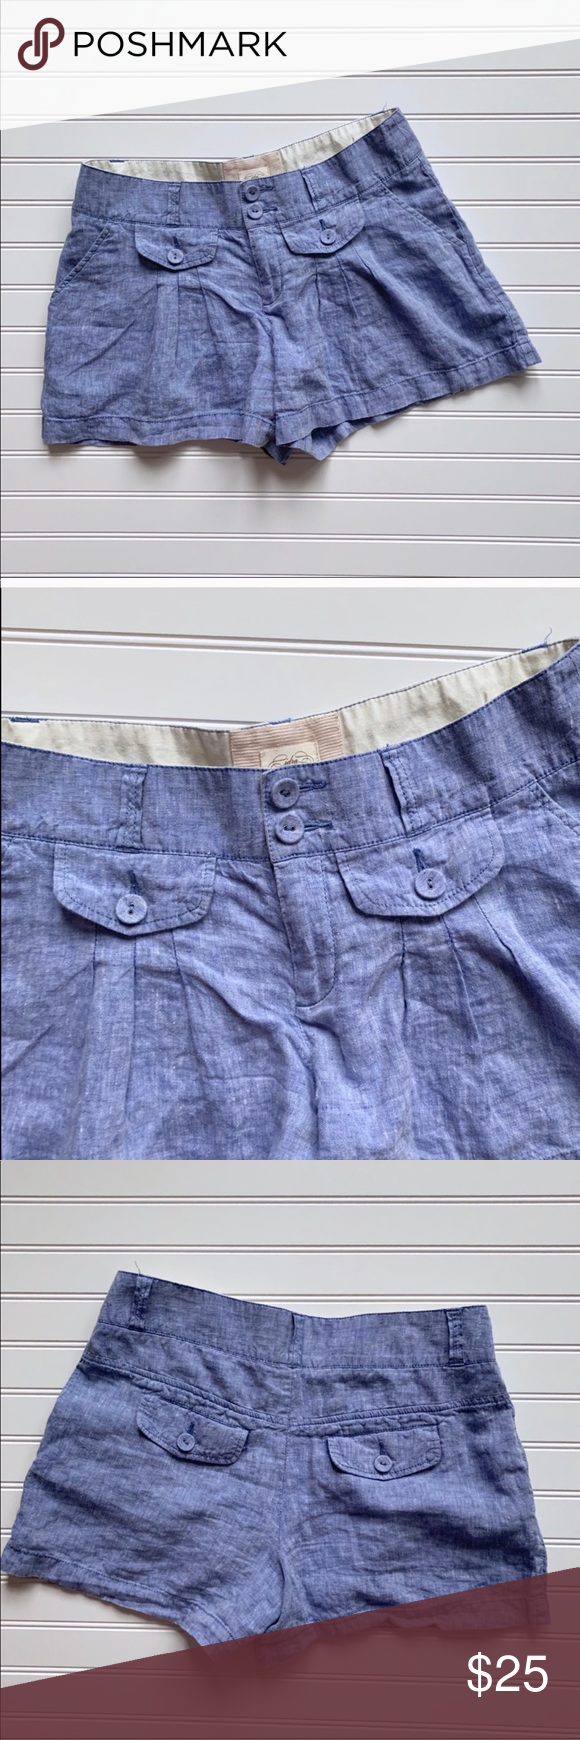 Cidra Anthro 100% Linen Light Blue Shorts Size 6 Excellent preowned condition. Cidra (Anthropologie) linen shorts with front button accents. Two pockets in front and two in back.   100% Linen Machine Wash Cold Anthropologie Shorts #lightblueshorts